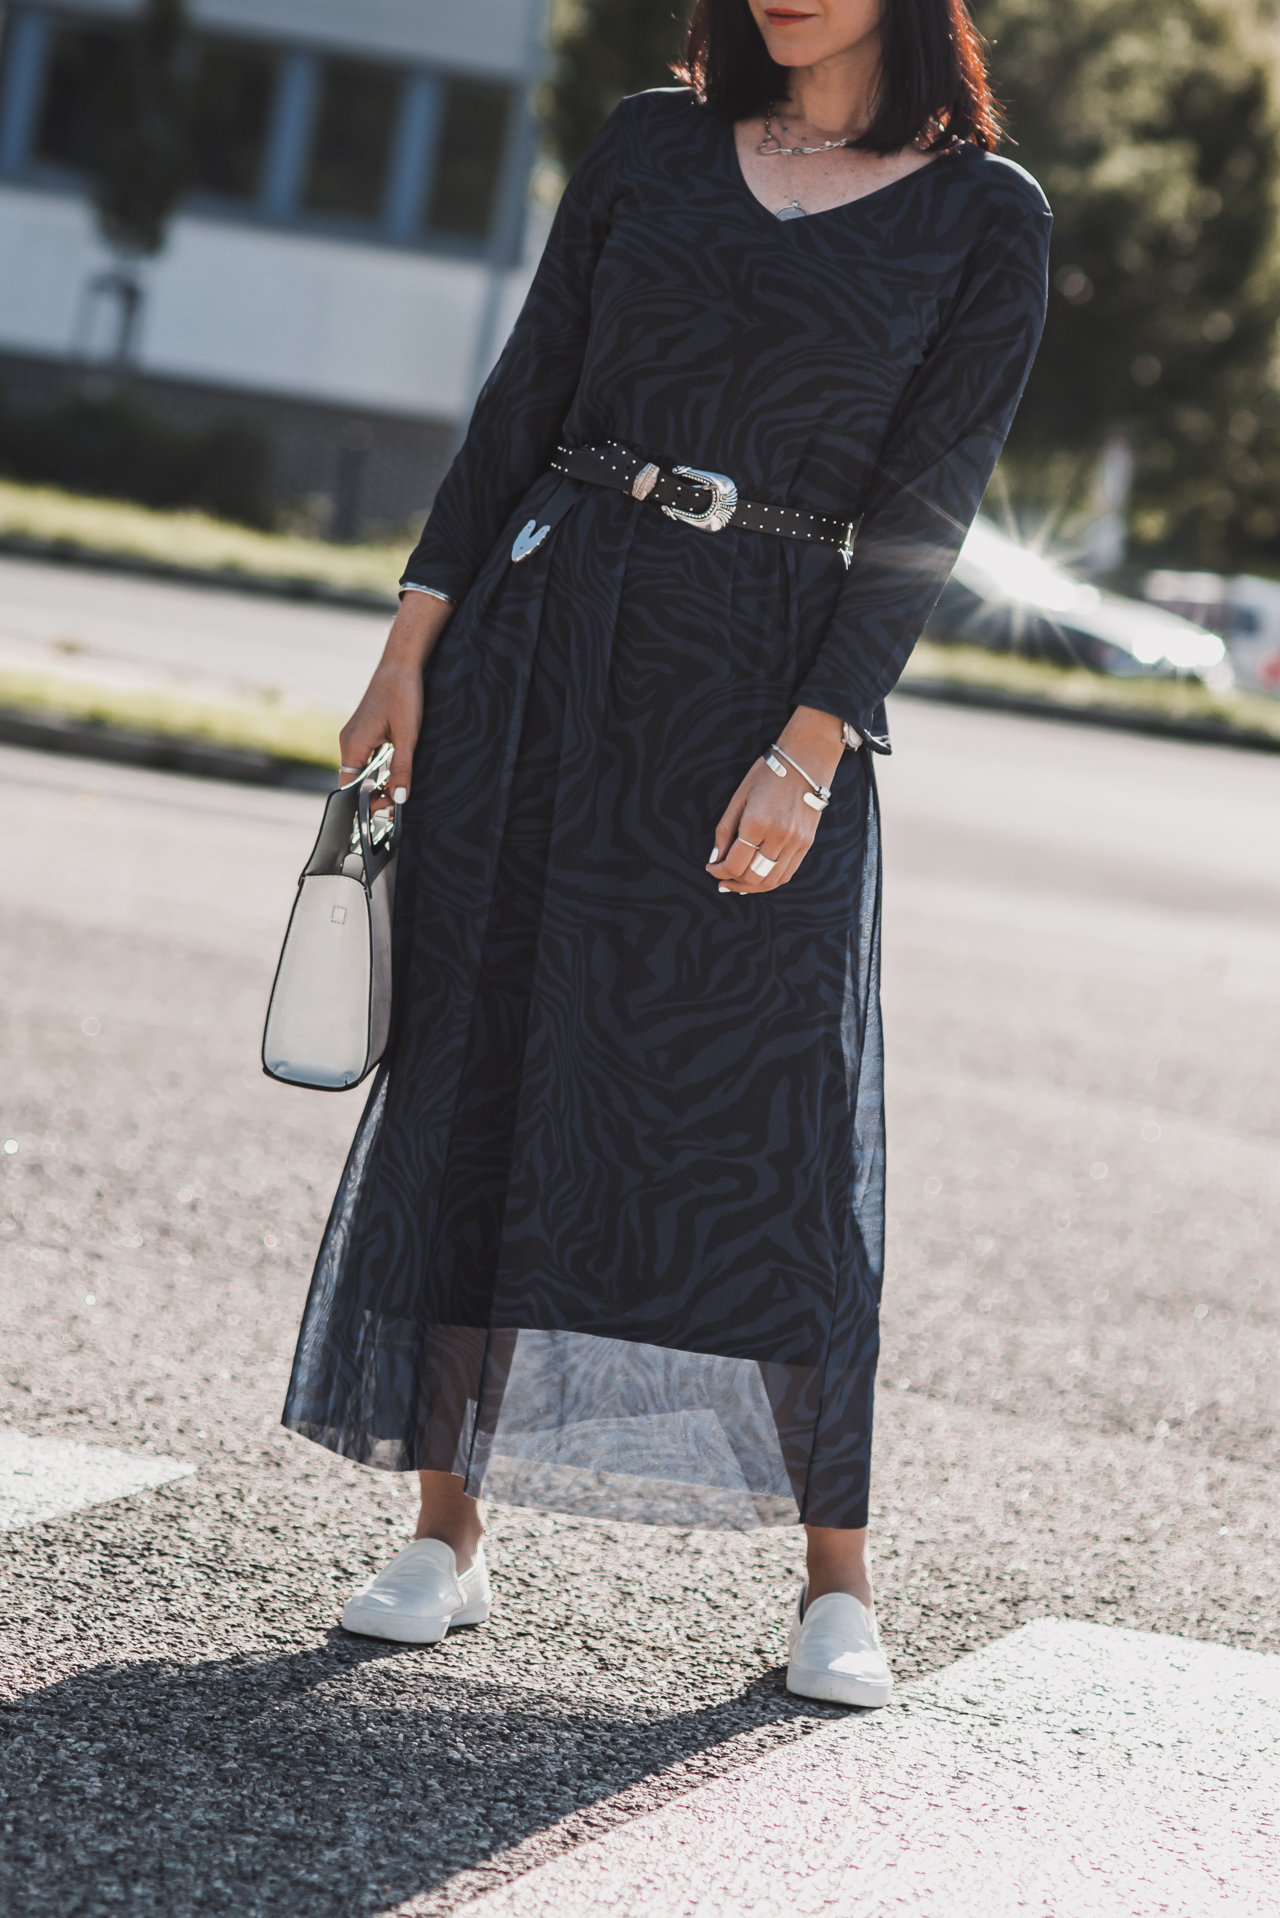 Autumn must-have maxi dress - that's why we need one Julie's Dresscode Fashion & Lifestyle Blog